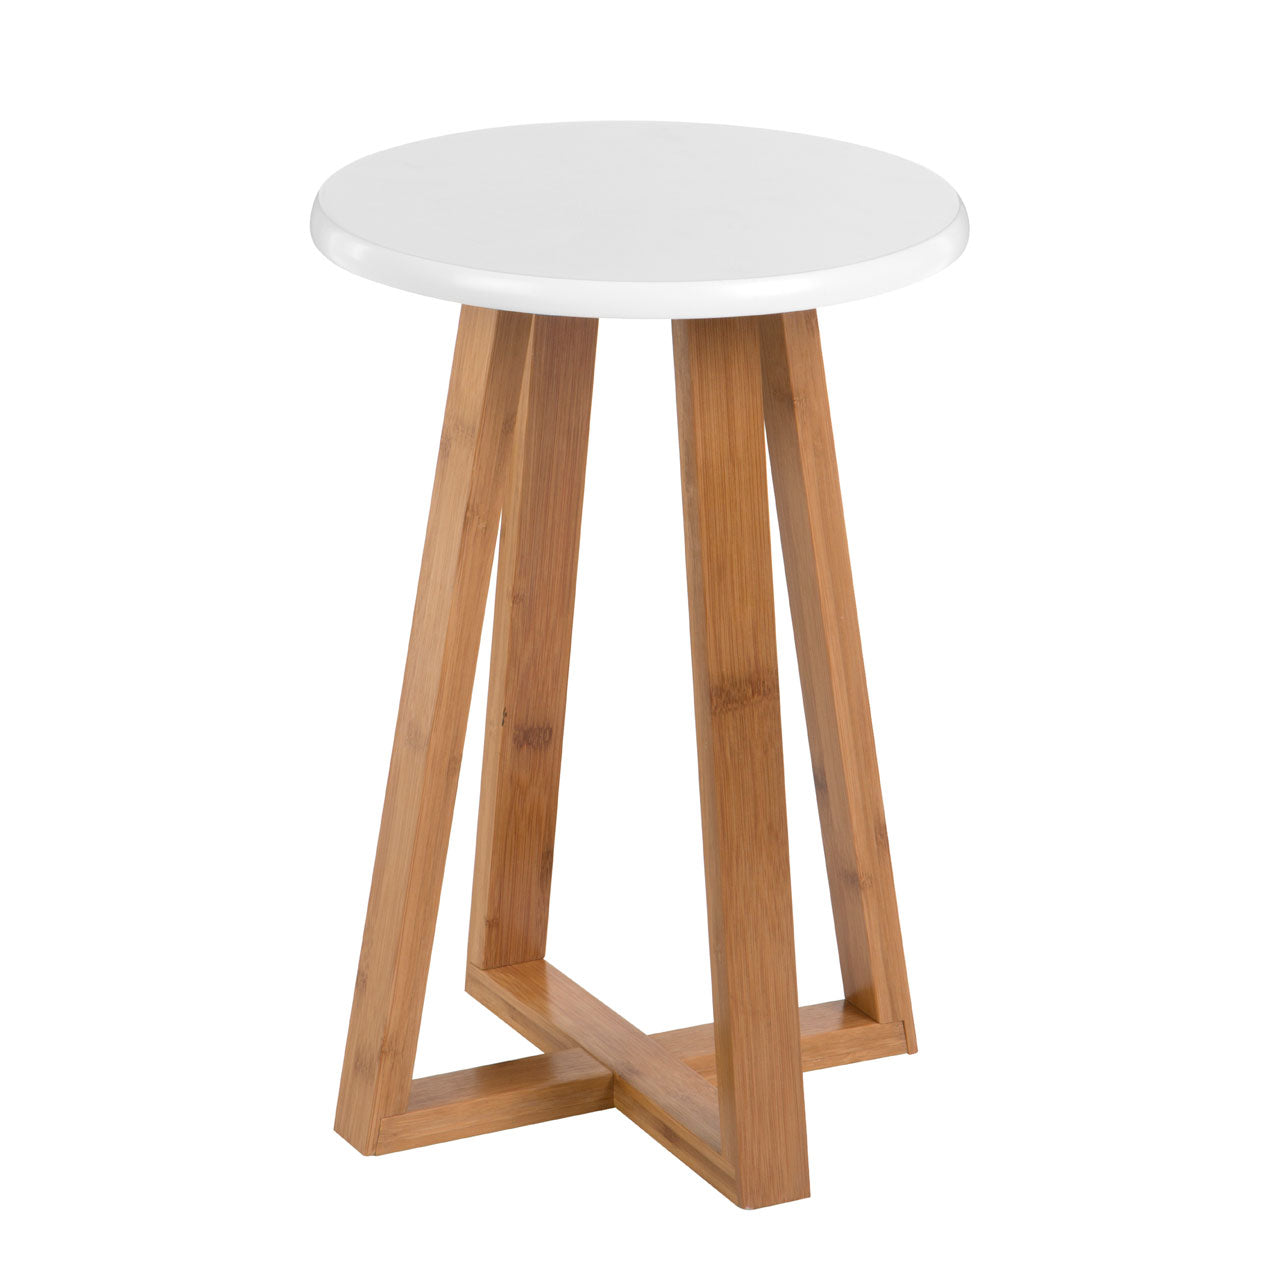 Viborg Round Stool in White